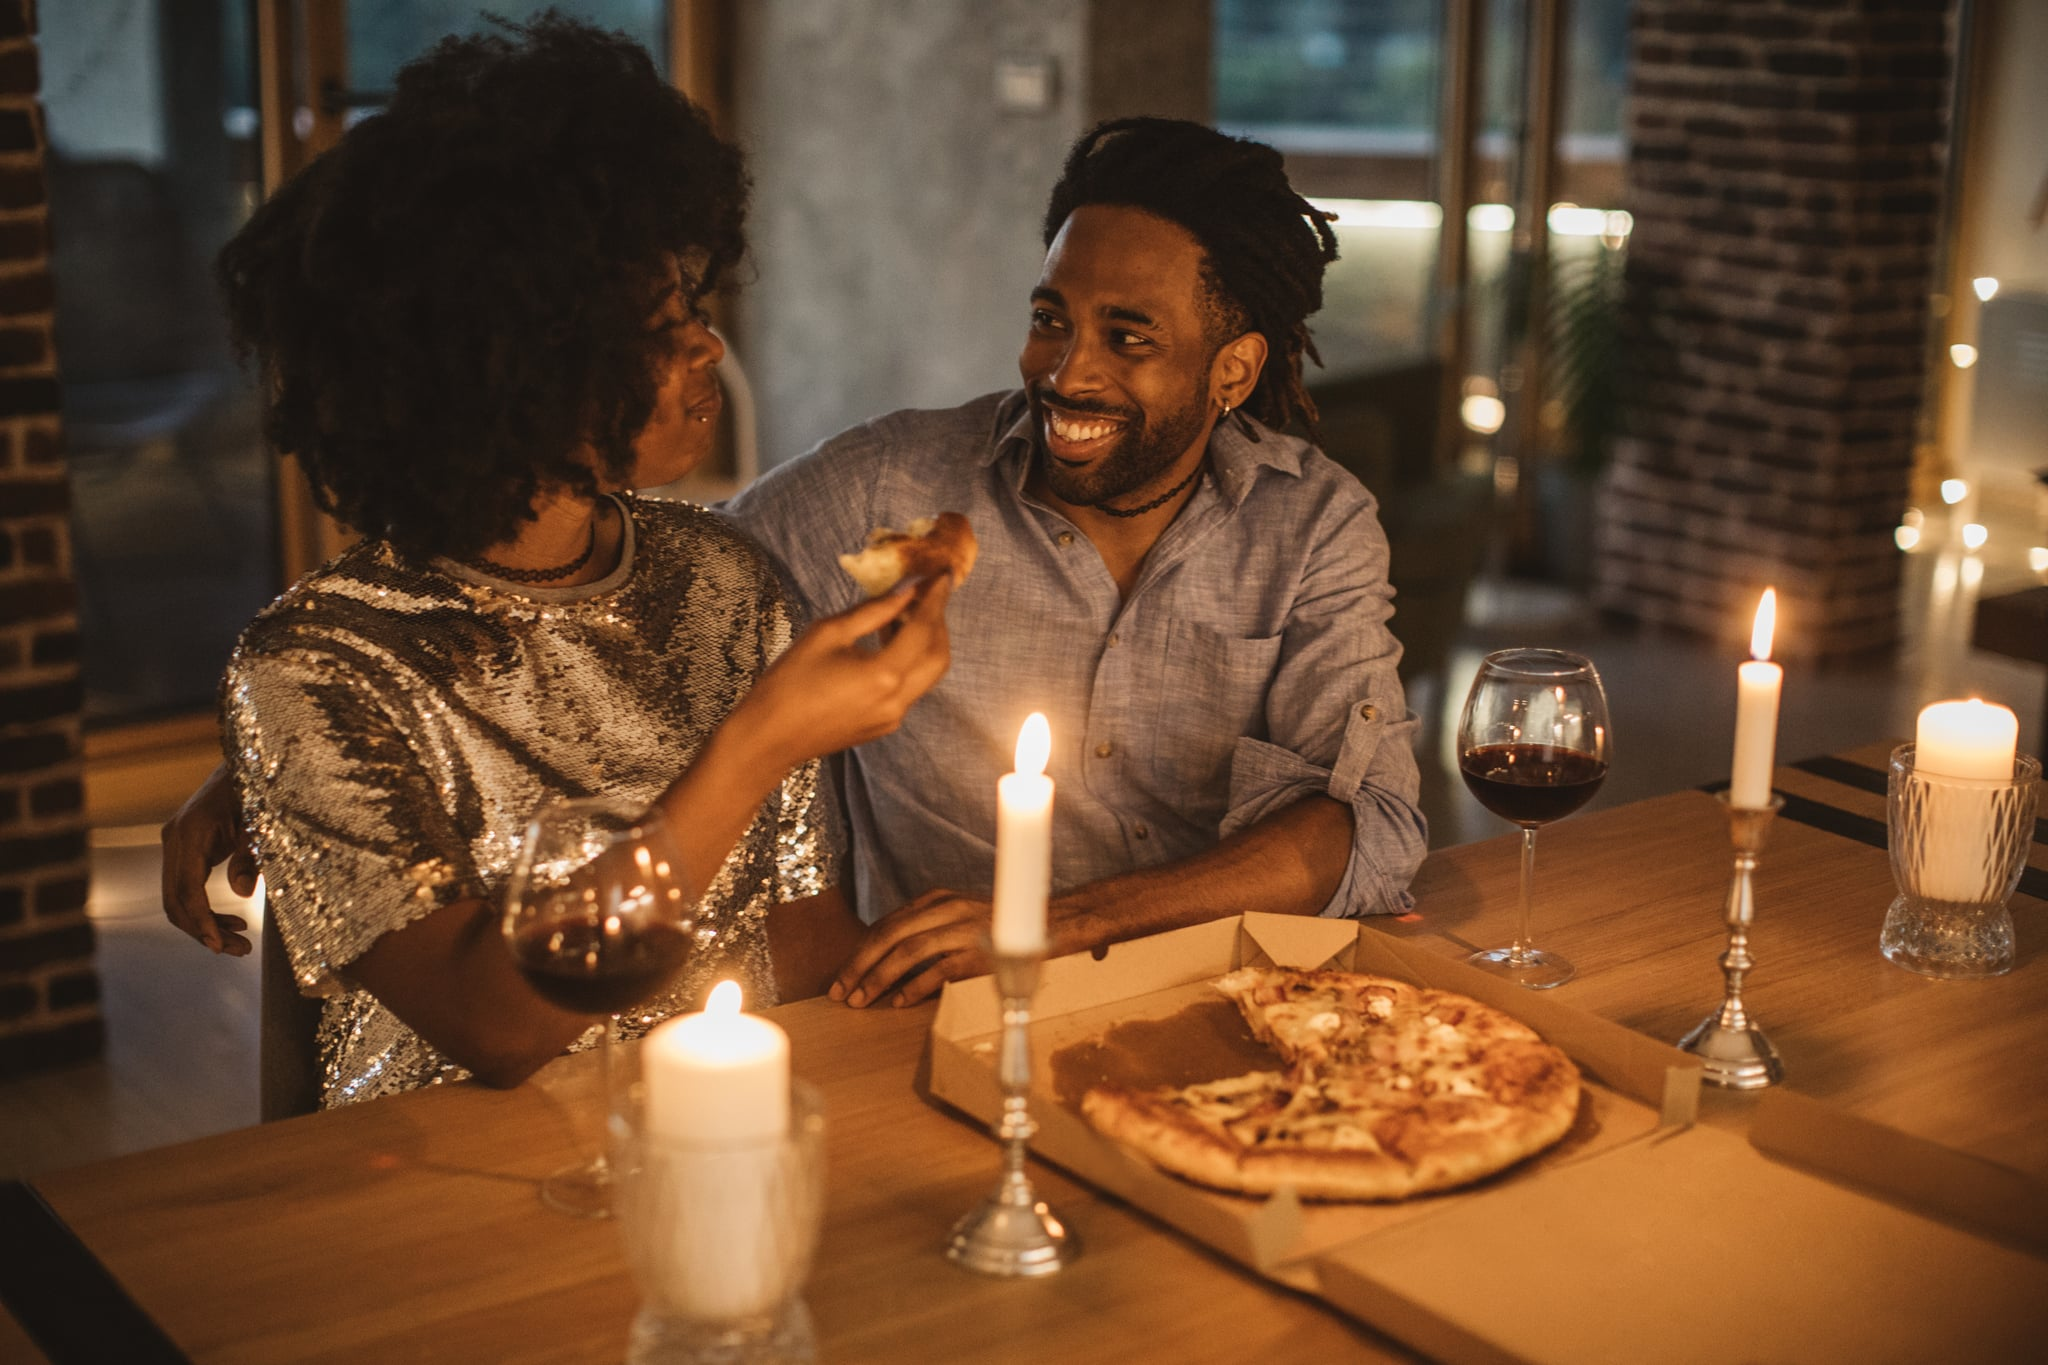 Young couple having romantic dinner at home. Eating pizza and drinking wine. Well dressed.